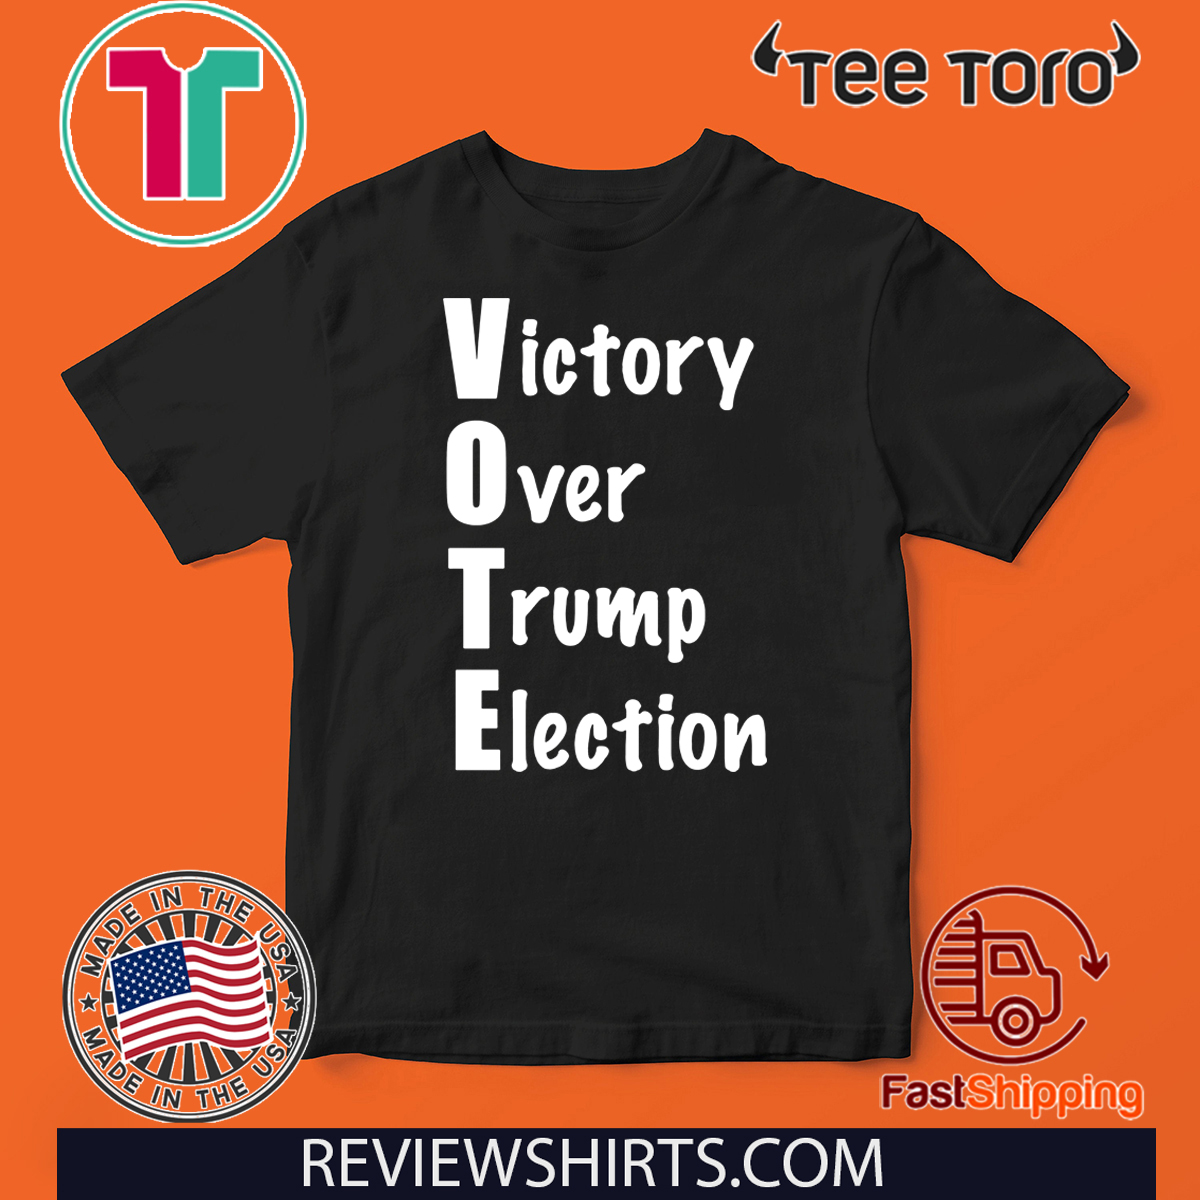 Victory Over Donald Trump Election T-Shirt